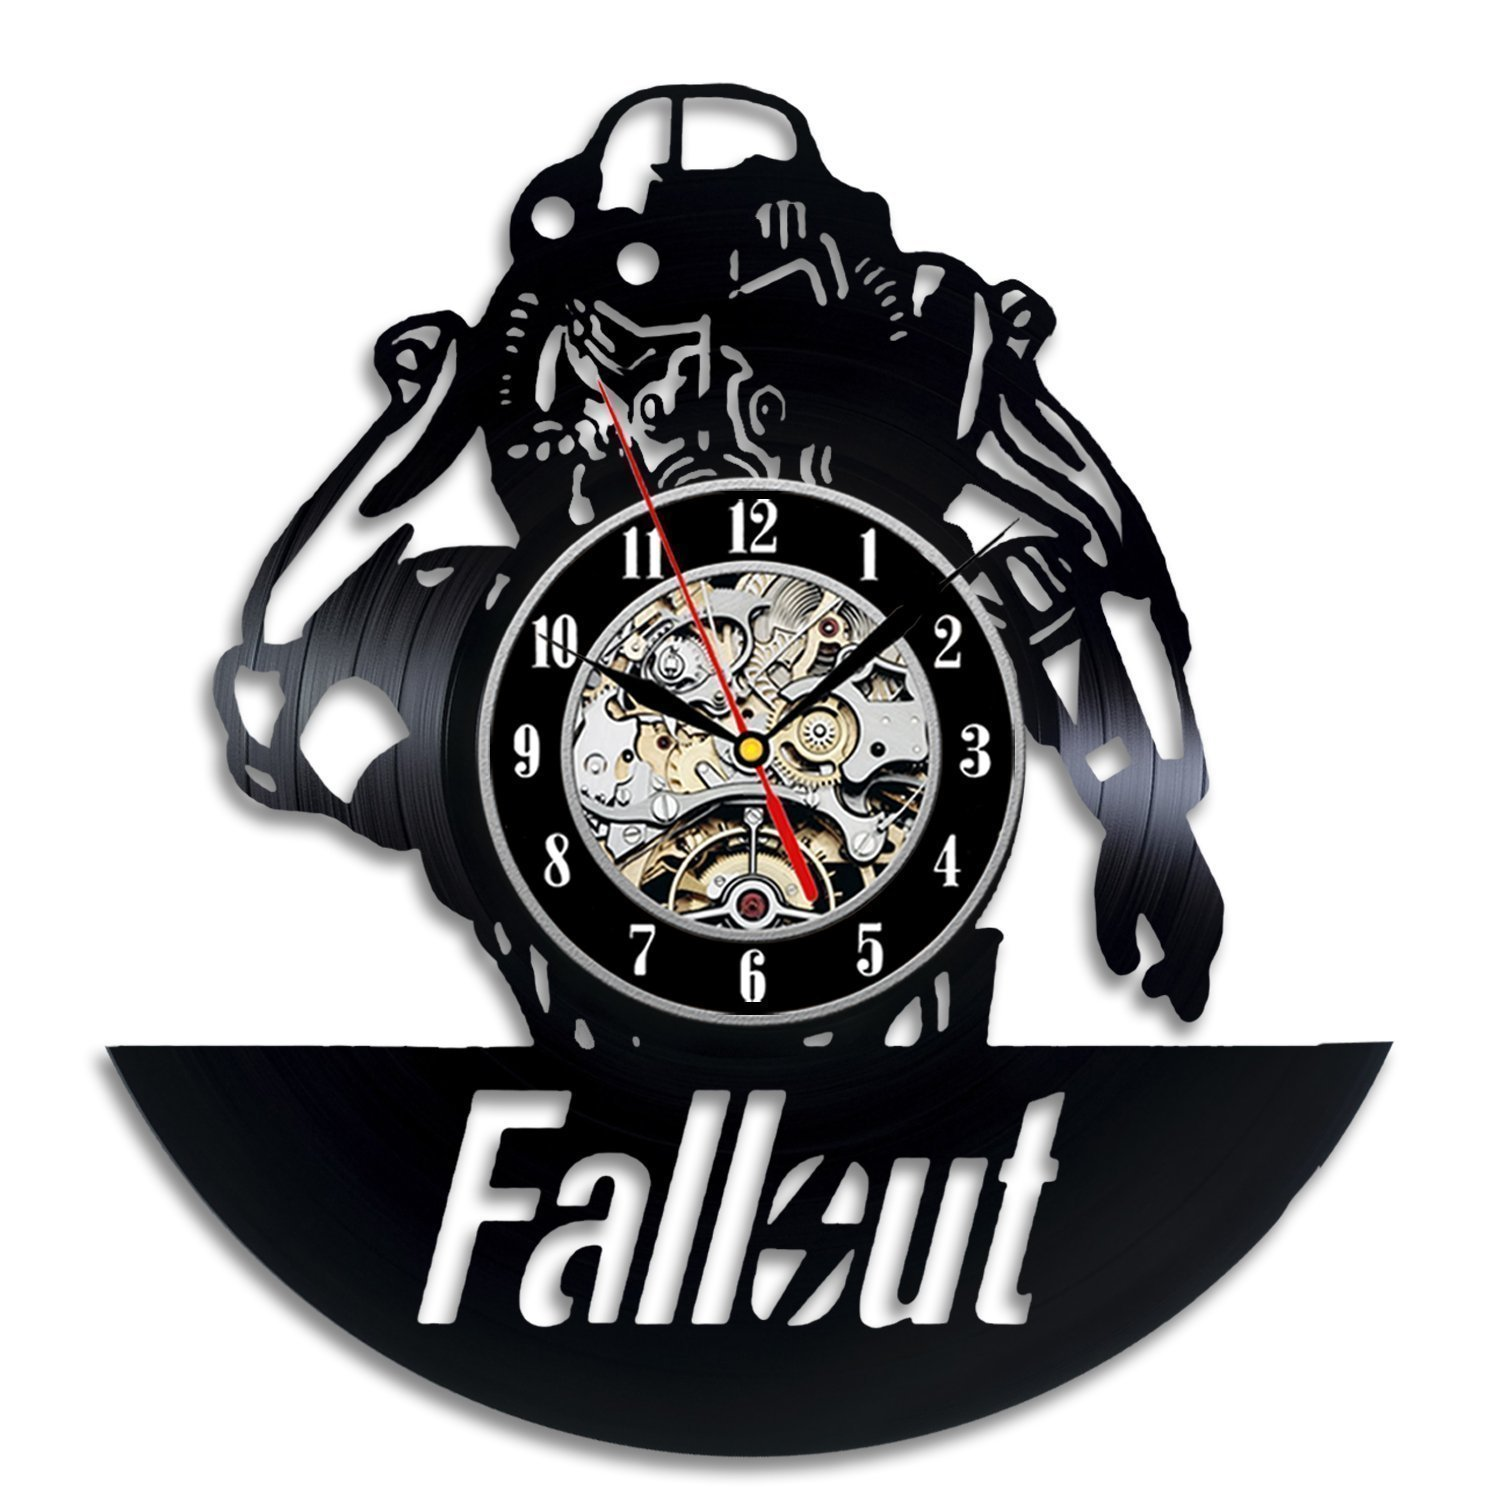 Vinyl Record Wall Clock Modern Design Living Room Decoration Vintage Retro Style Fallout Clocks Wall Watch Art Home Decor 12